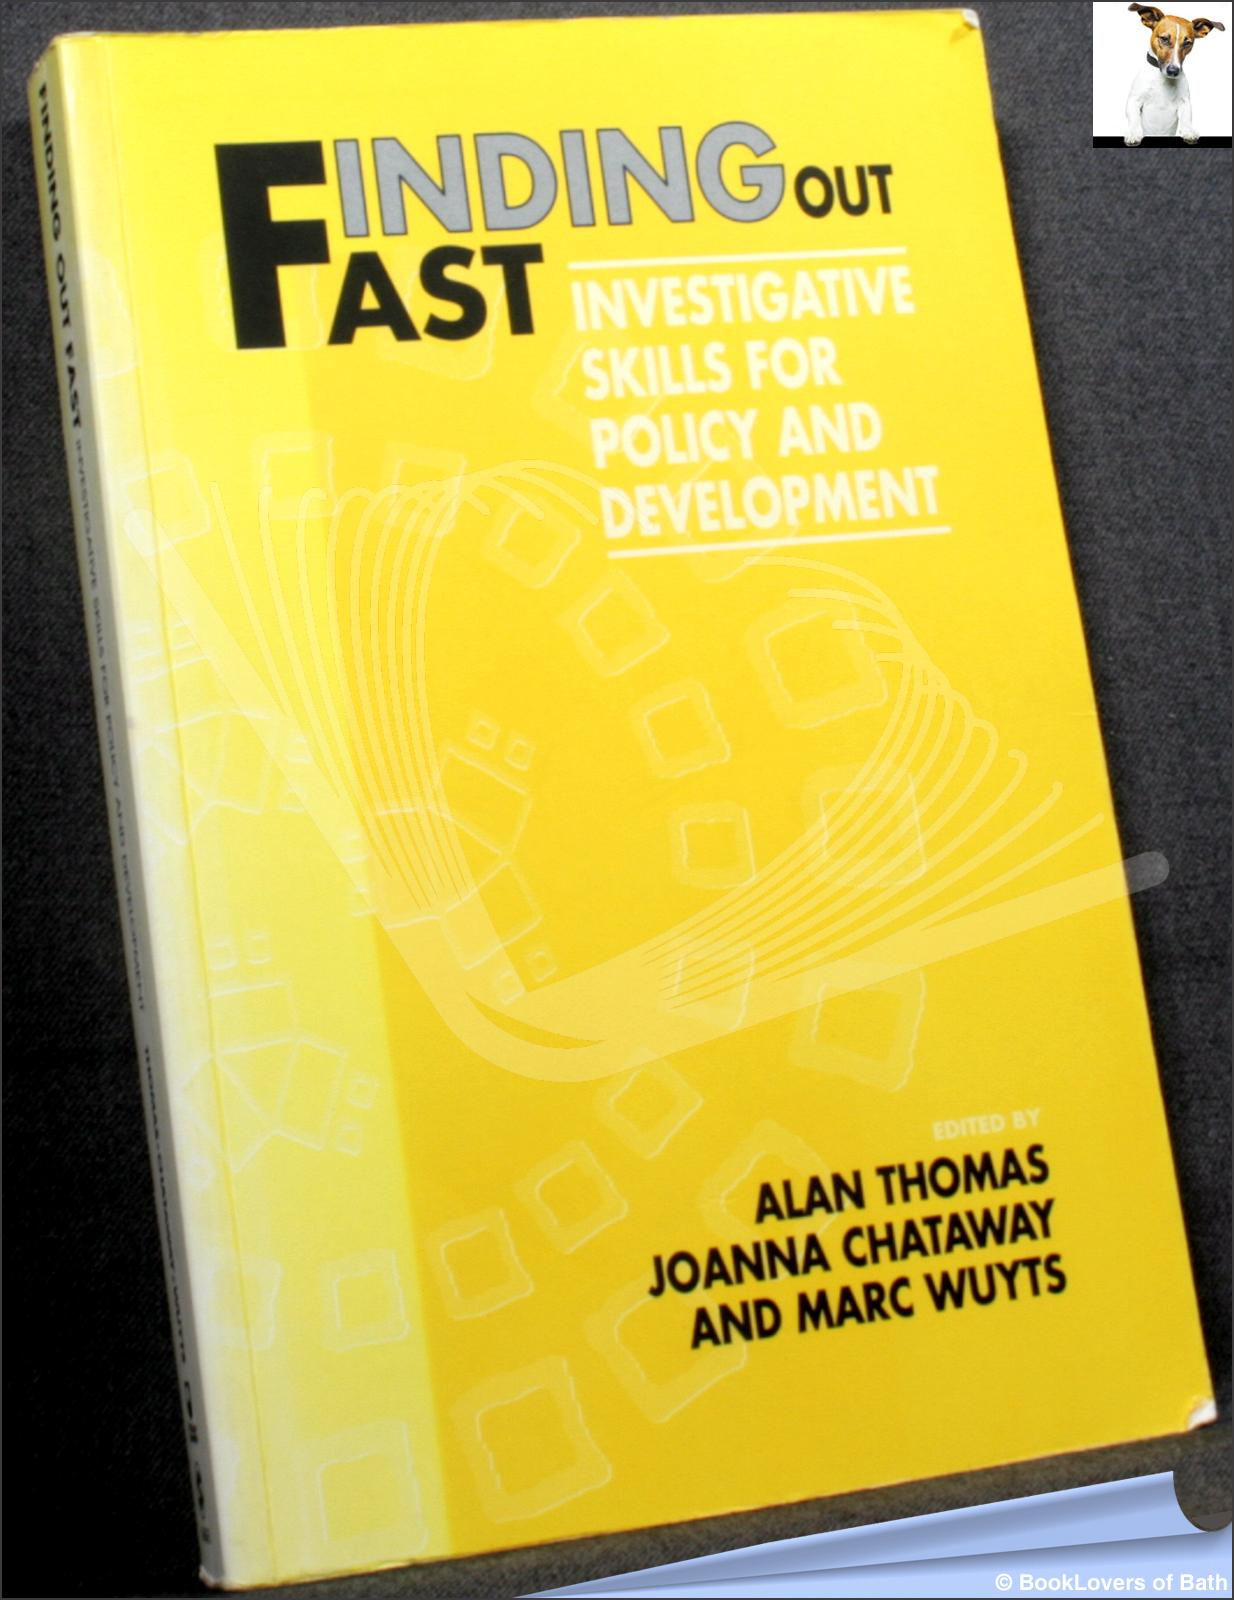 Finding Out Fast: Investigative Skills for Policy and Development - Edited by Alan Thomas, Joanna Chataway & Marc Wuyts